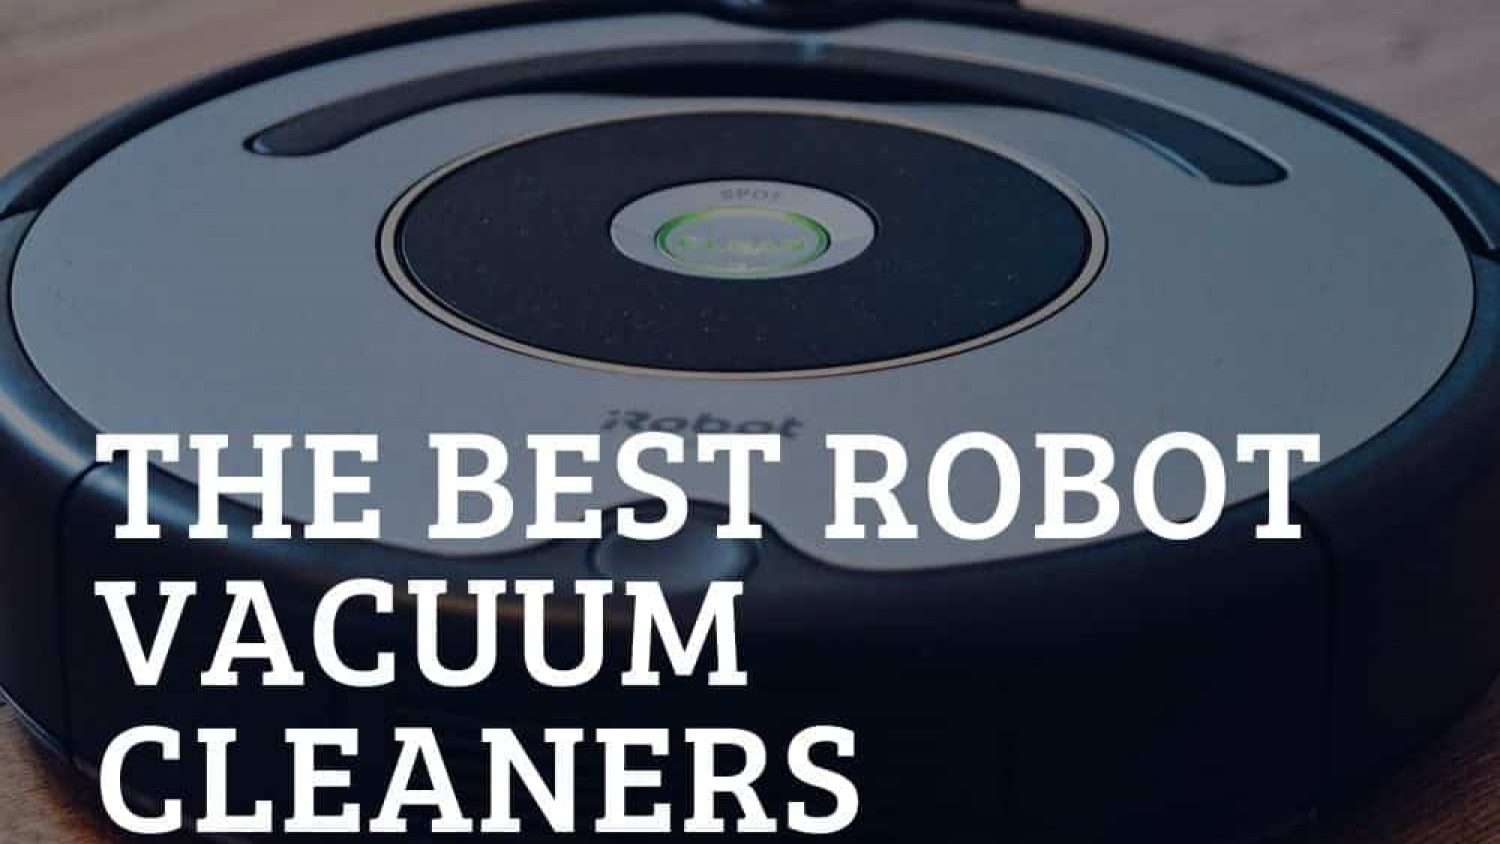 Best Robot Vacuum Cleaners Reviewed – Why Clean When You Don't Have To!